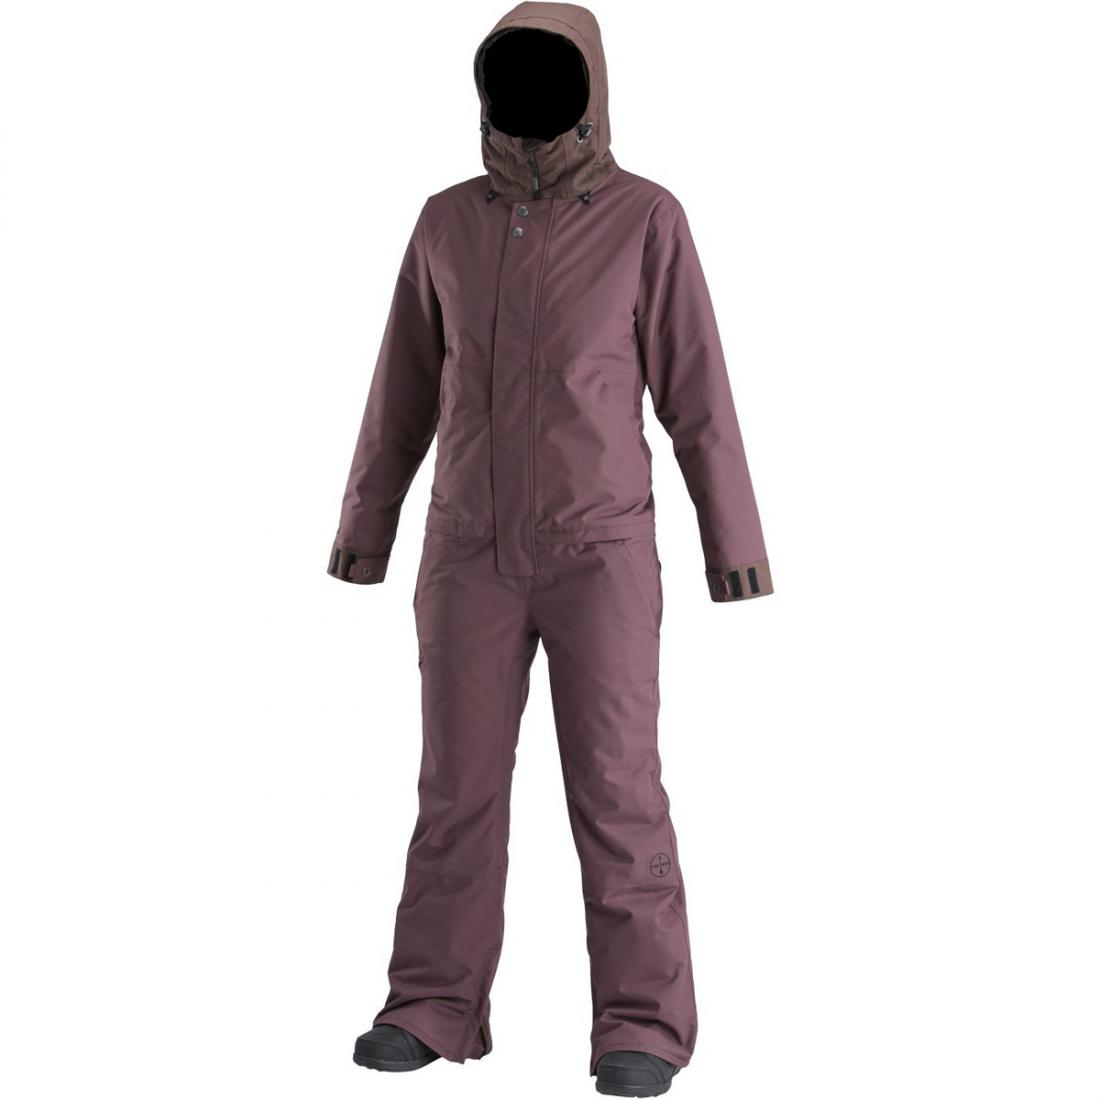 Комбинезон WOMEN'S INSULATED FREEDOM SUIT жен. Бордовый